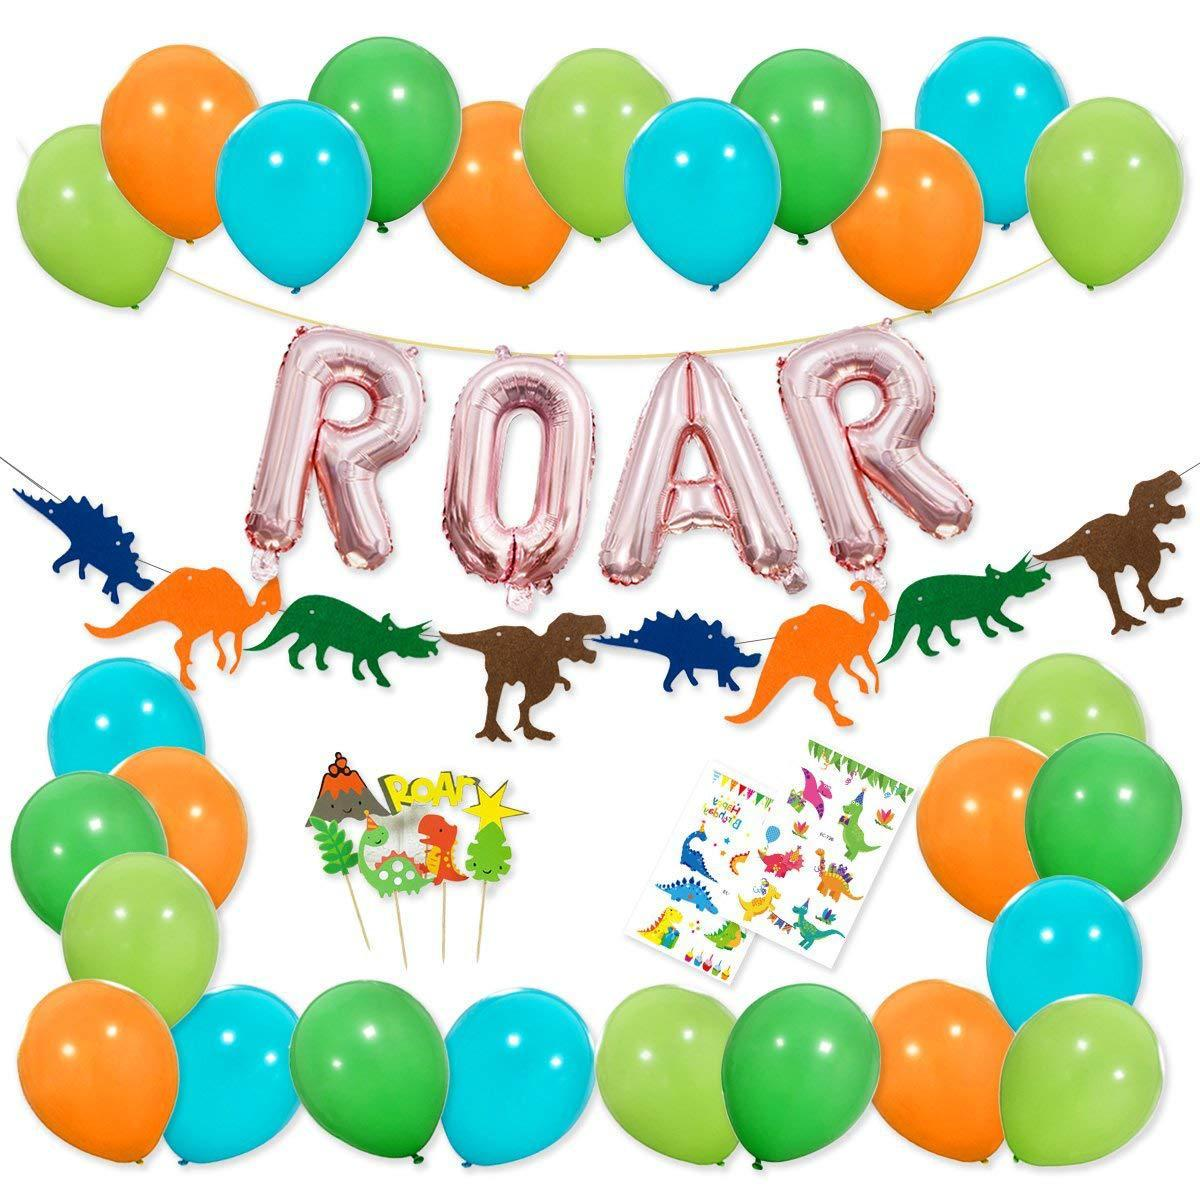 2019 2019 hot dinosaur roar theme happy birthday party garland banner tattoo sticker balloon decoration party set from syjing818 9 8 dhgate com